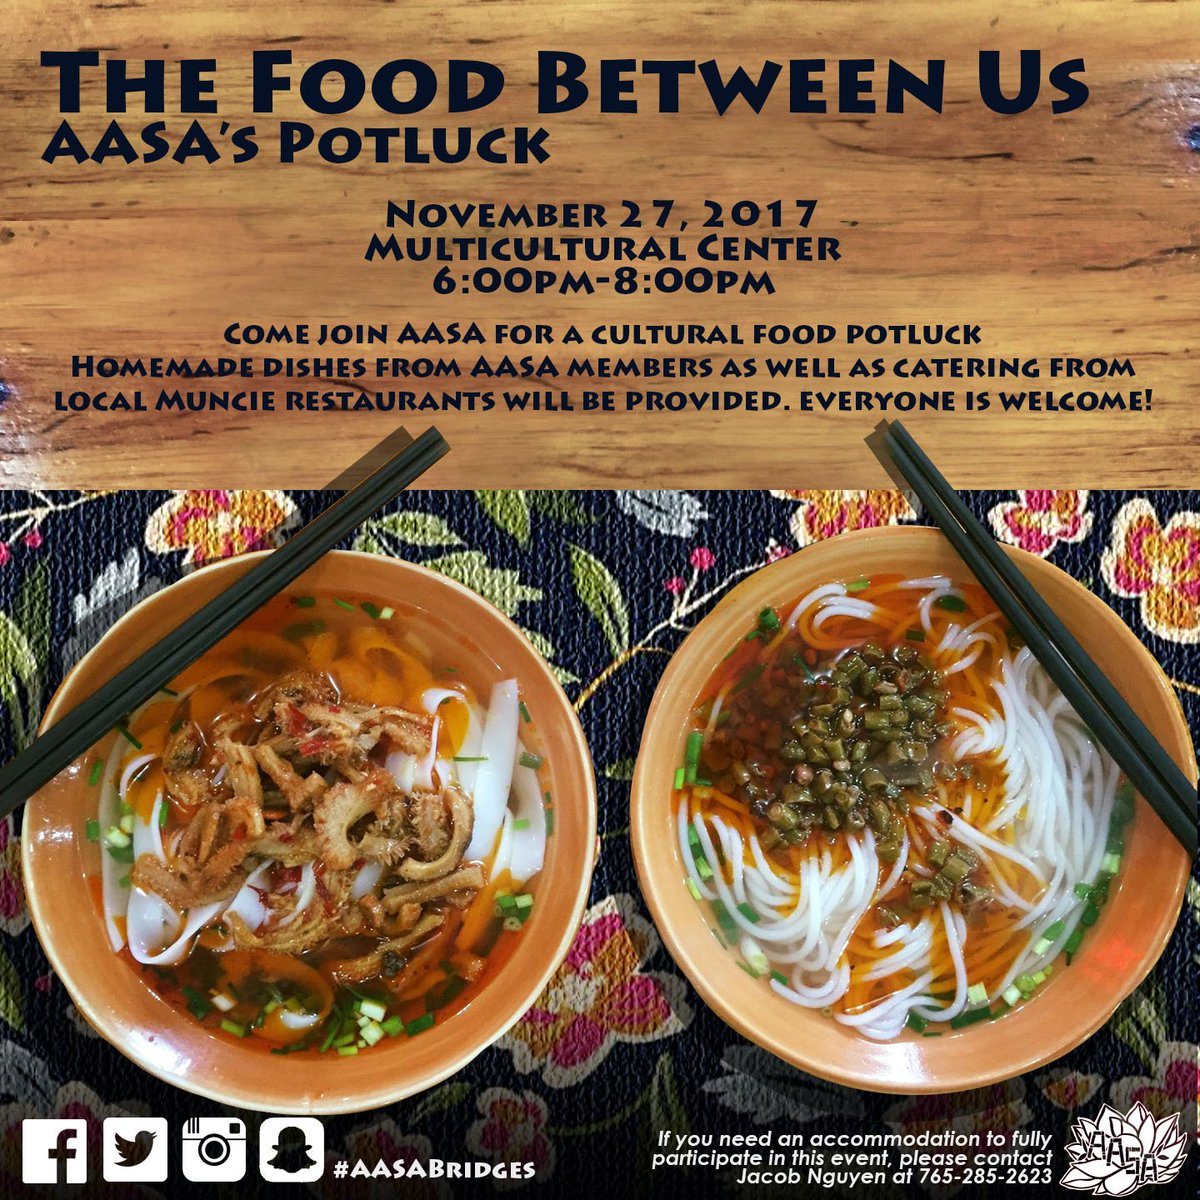 Ball State Aasa On Twitter Come Join Aasa For A Cultural Food